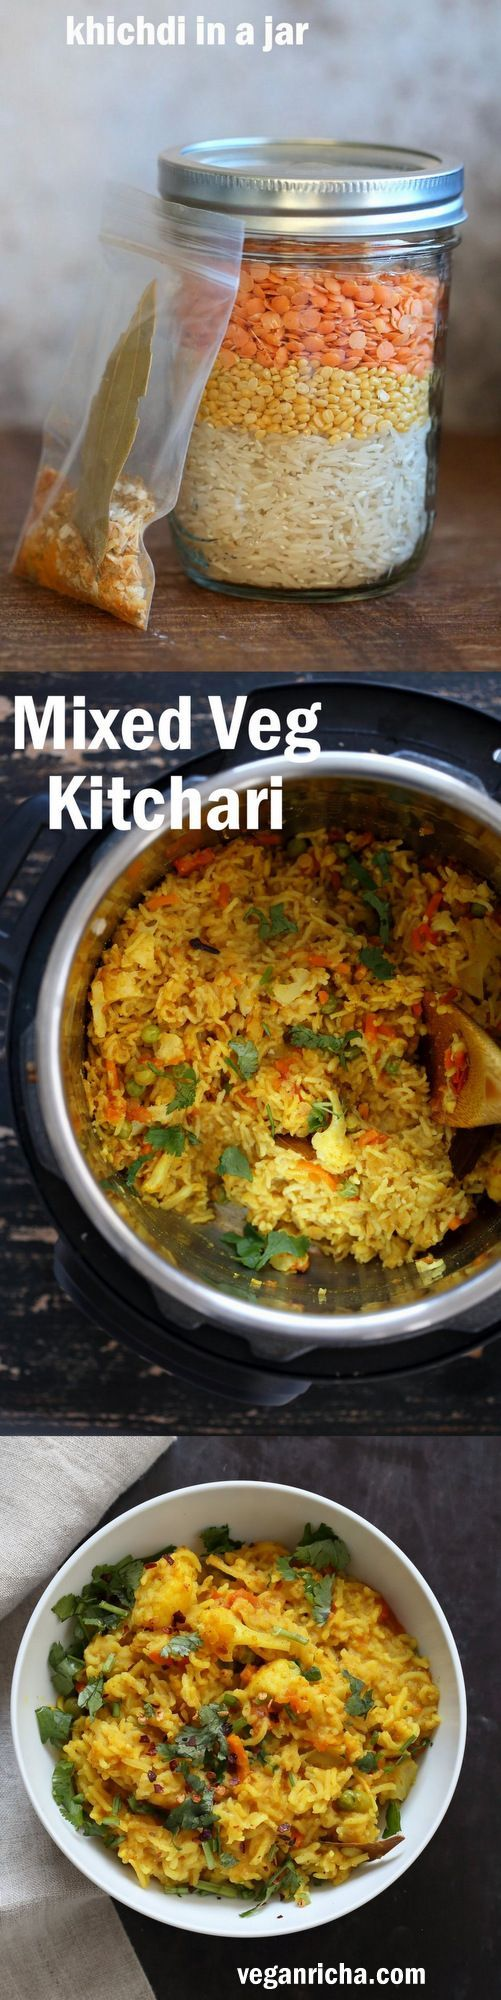 Khichdi in a Jar - Mixed Vegetable Kitchari Mix for Instant Pot or Saucepan. Spiced Risotto like Dish. Easy Lentil Rice Soup with Veggies. Gift the jar full of lentils, rice and spices. Empty into a pot with veggies of choice. Easy Weekday Dinner. Vegan Gluten-free Soy-free Nut-free Recipe. #vegan #veganricha